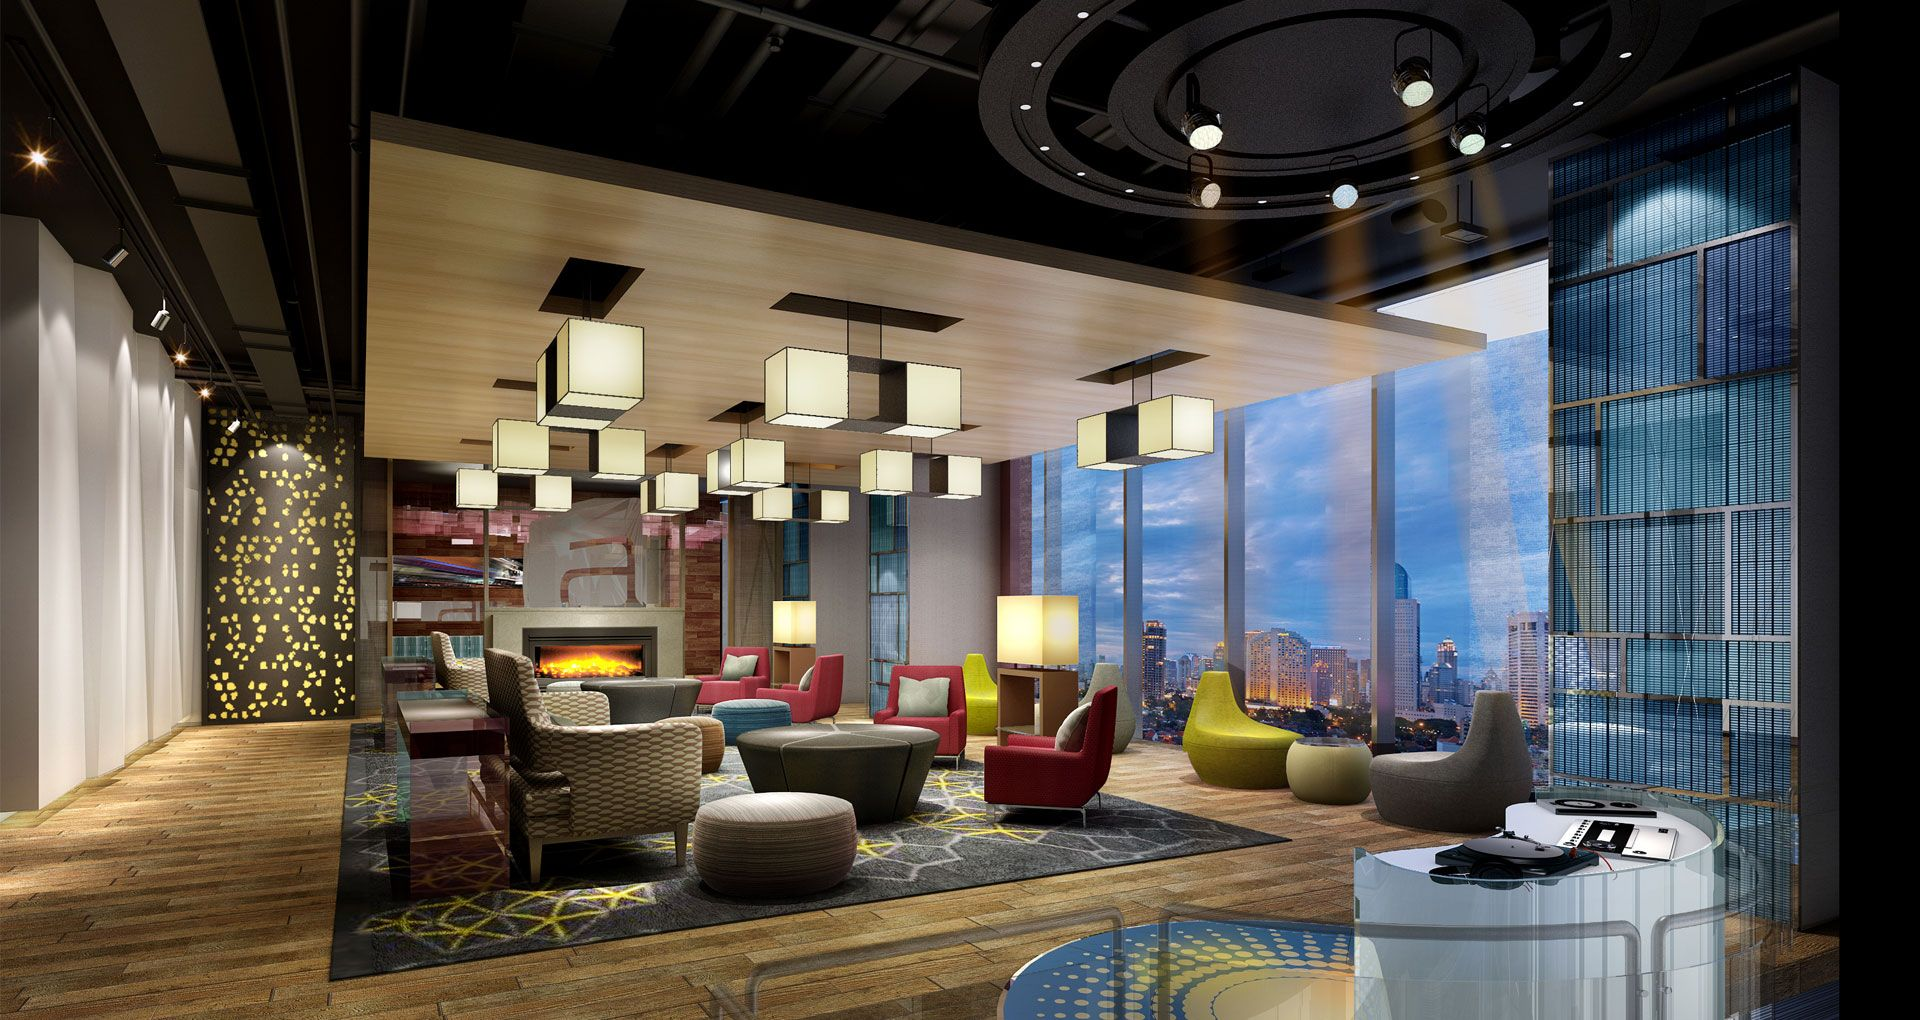 Aloft guangzhou tianhe hotel designed by studio hba this for Hotel design concept